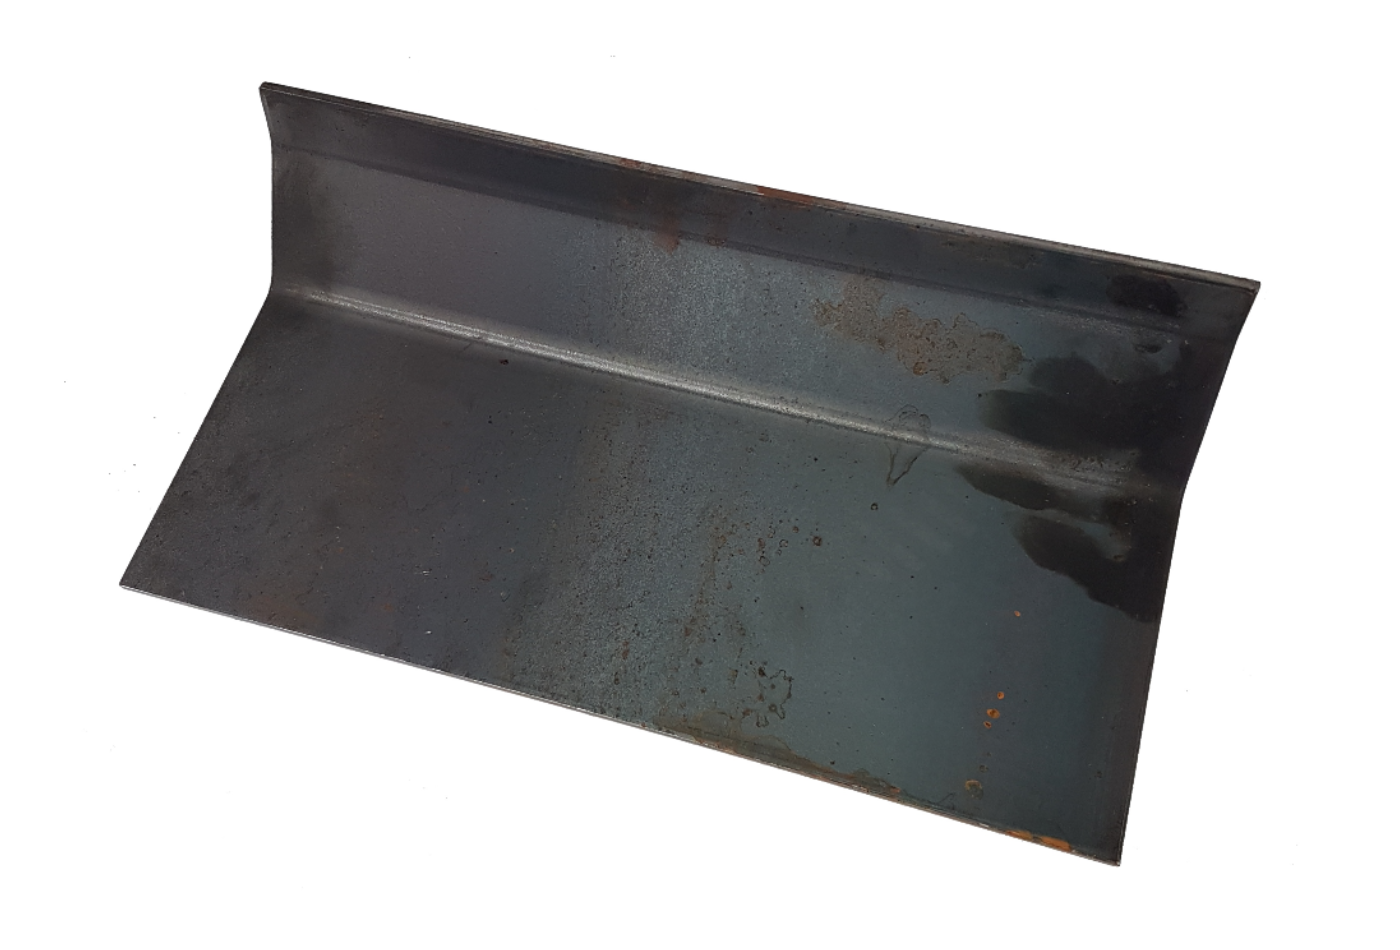 A replacement Baffle suitable for Stovax View 5 Midline MK3 stoves.